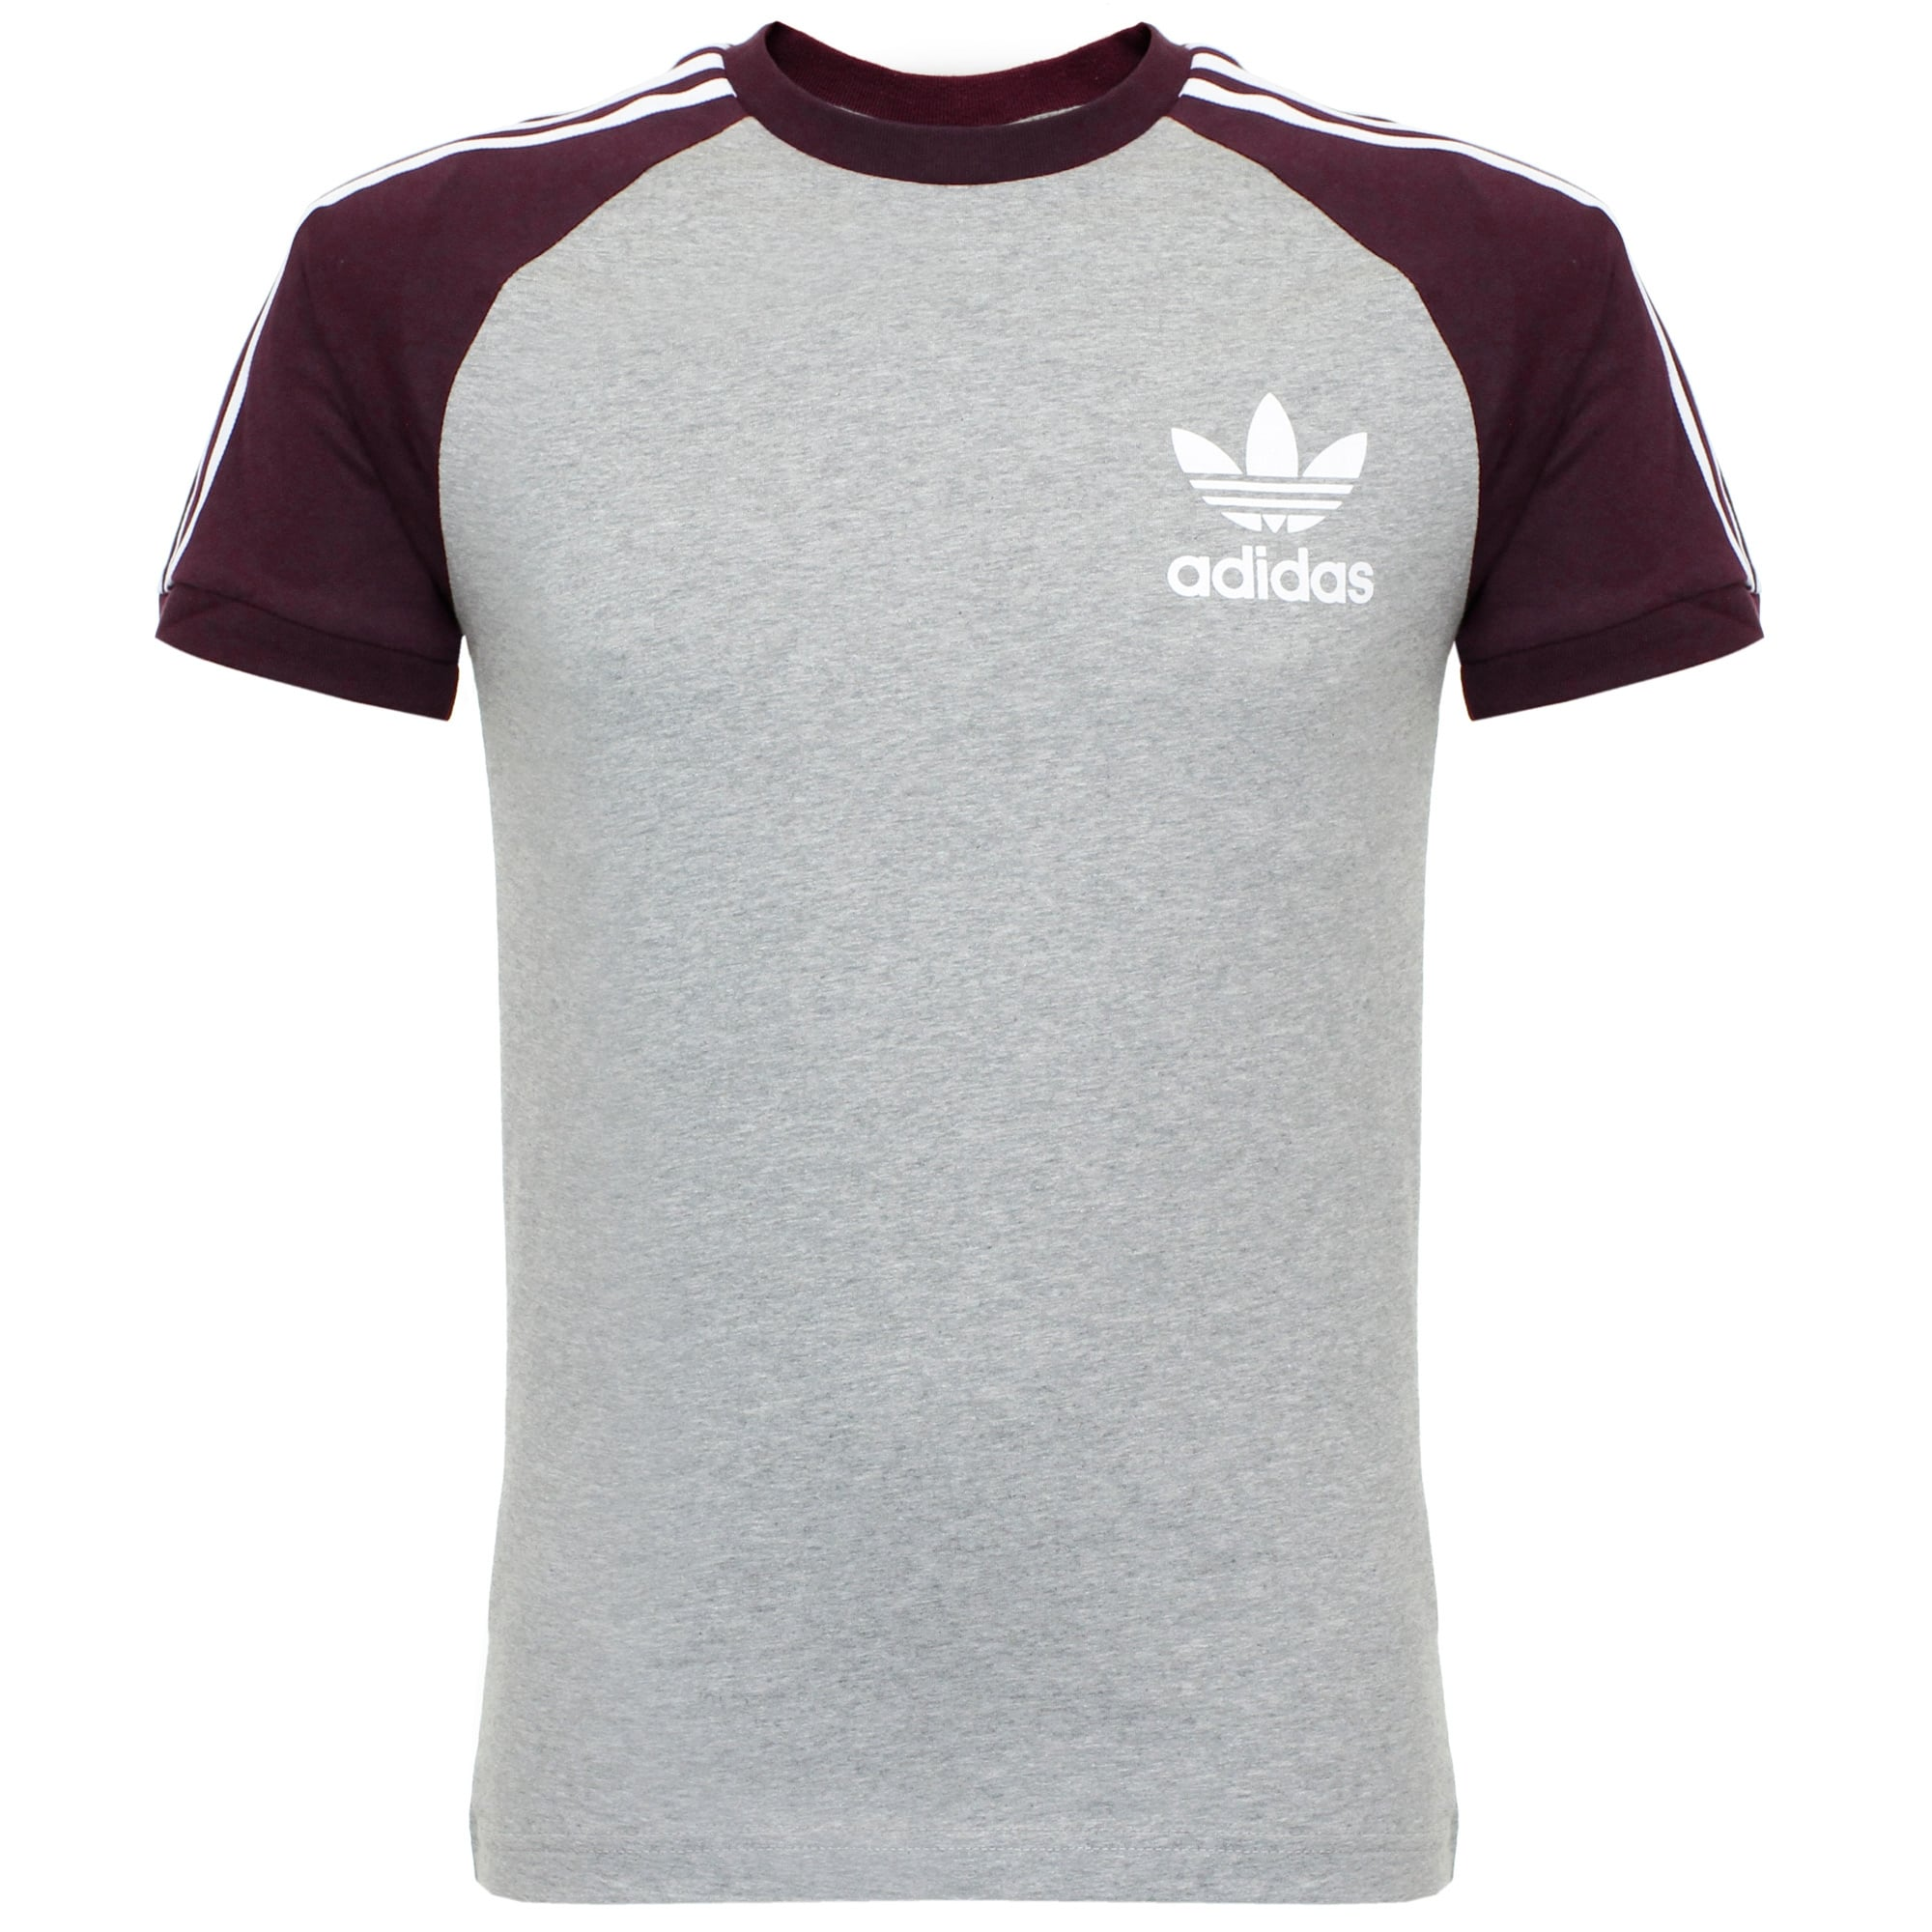 adidas essentials california medium grey t shirt. Black Bedroom Furniture Sets. Home Design Ideas